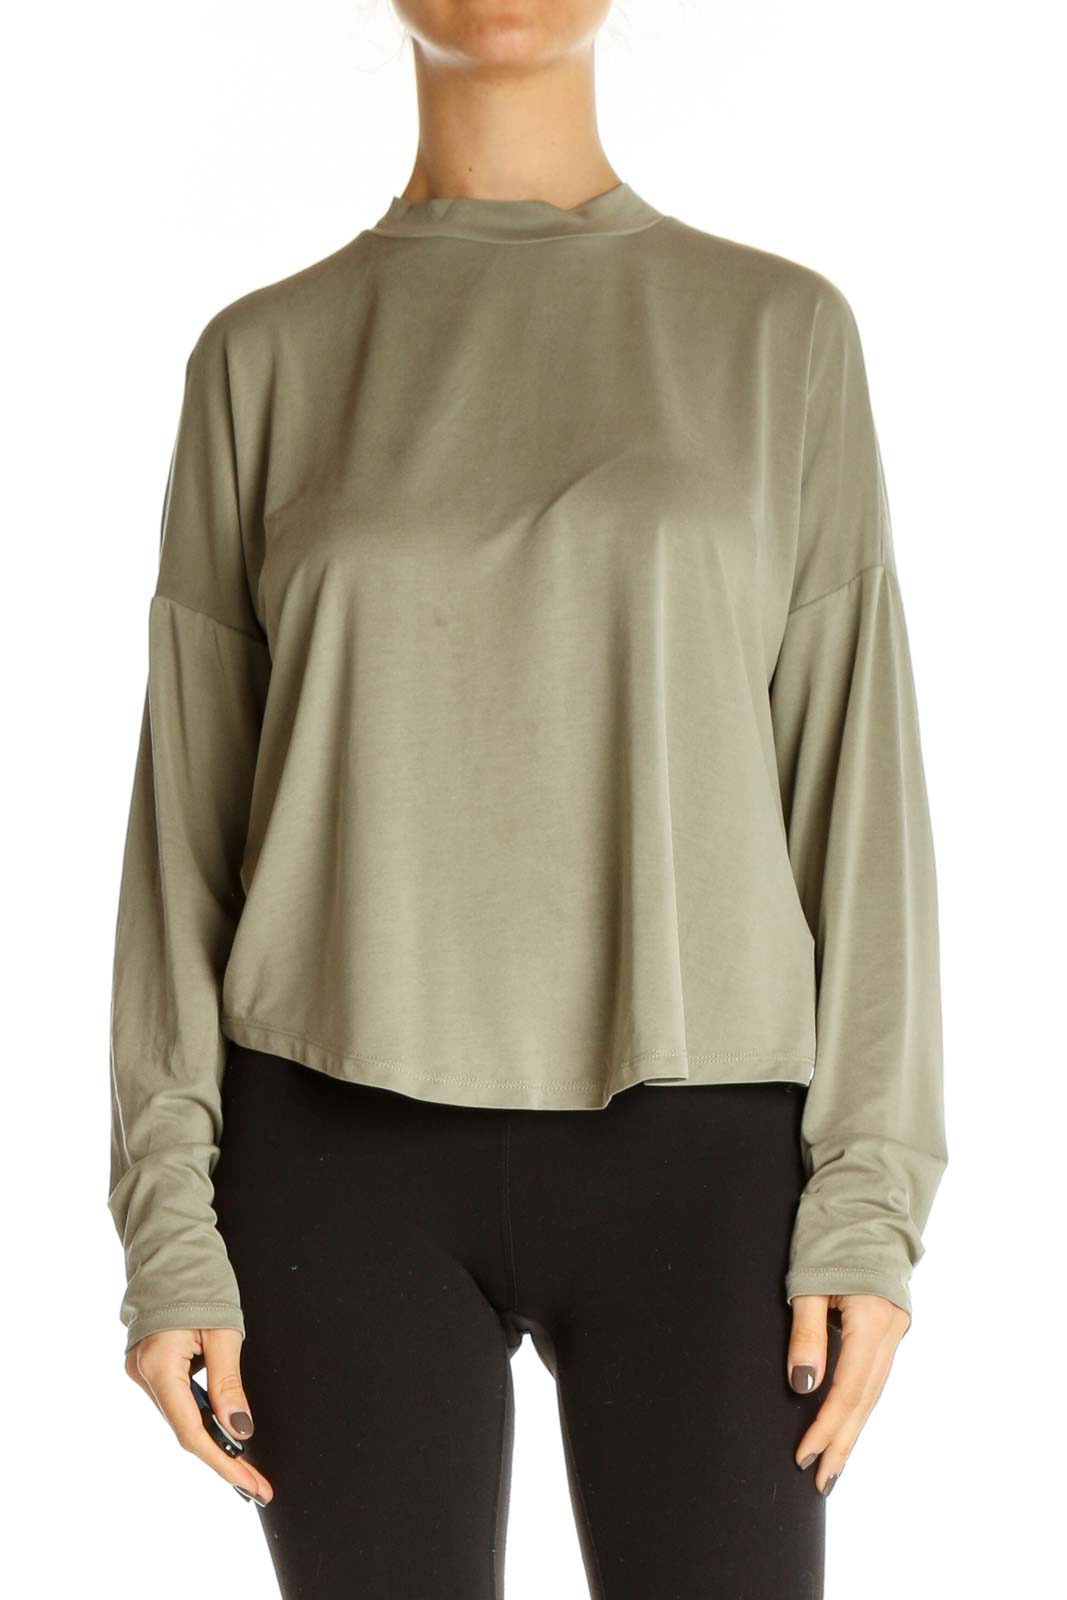 Beige Solid All Day Wear Top Front